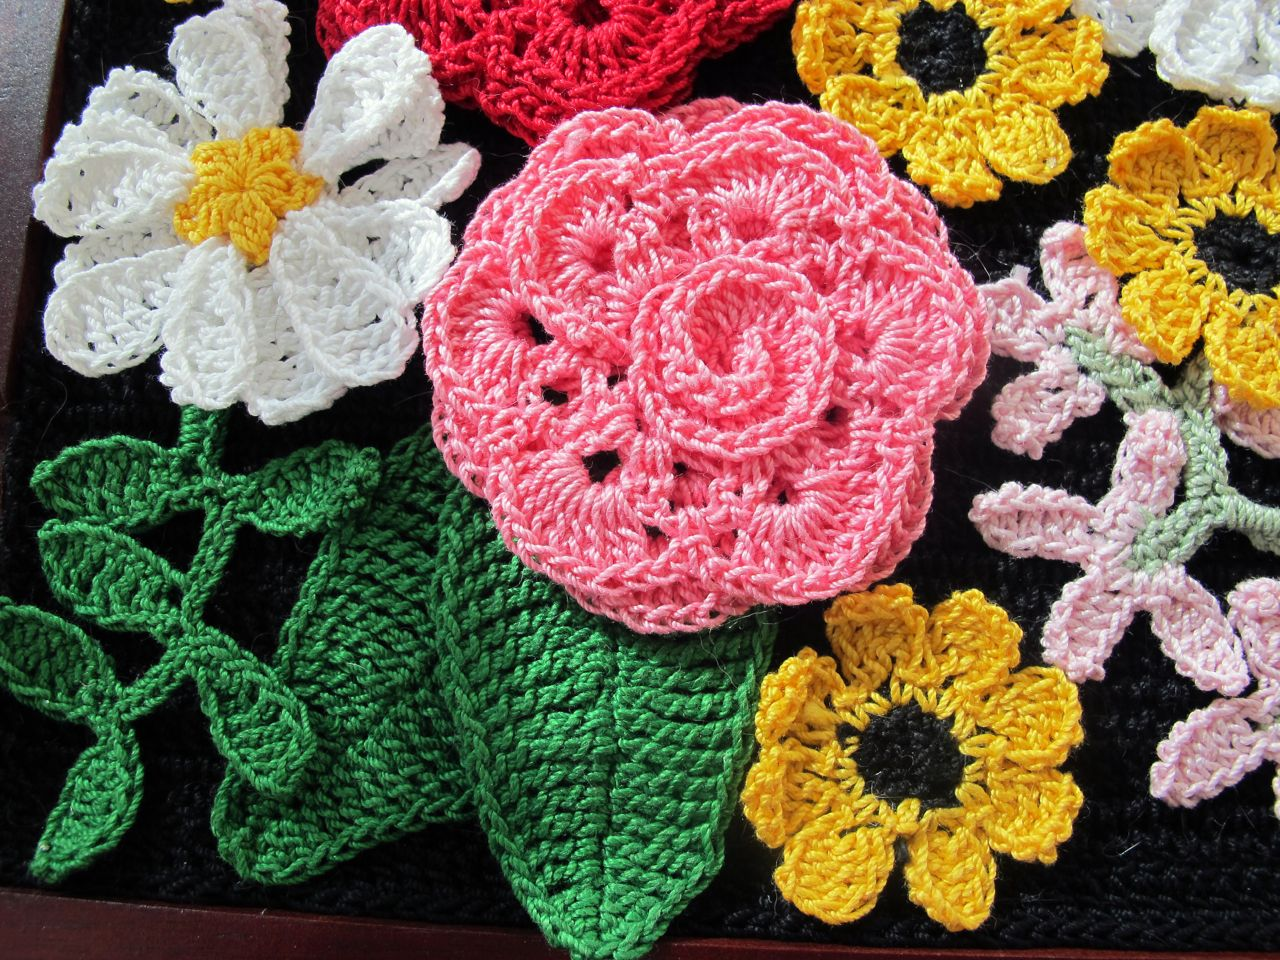 Framed Crochet Flowers Babycakes Creates